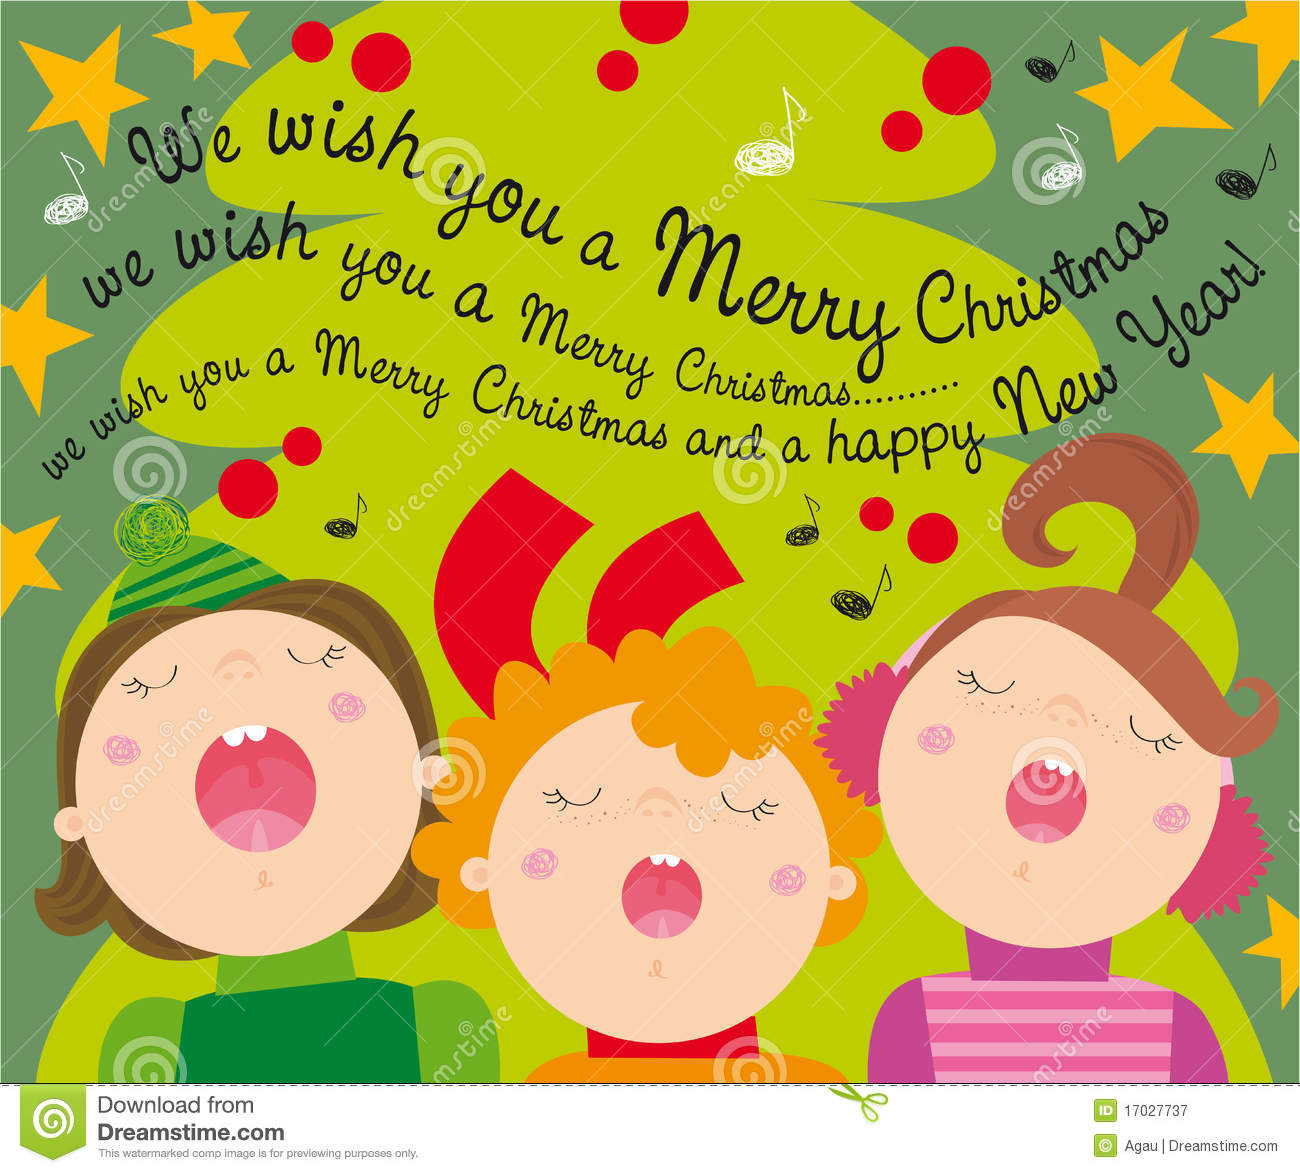 Christmas carols stock vector. Illustration of greetings - 17027737